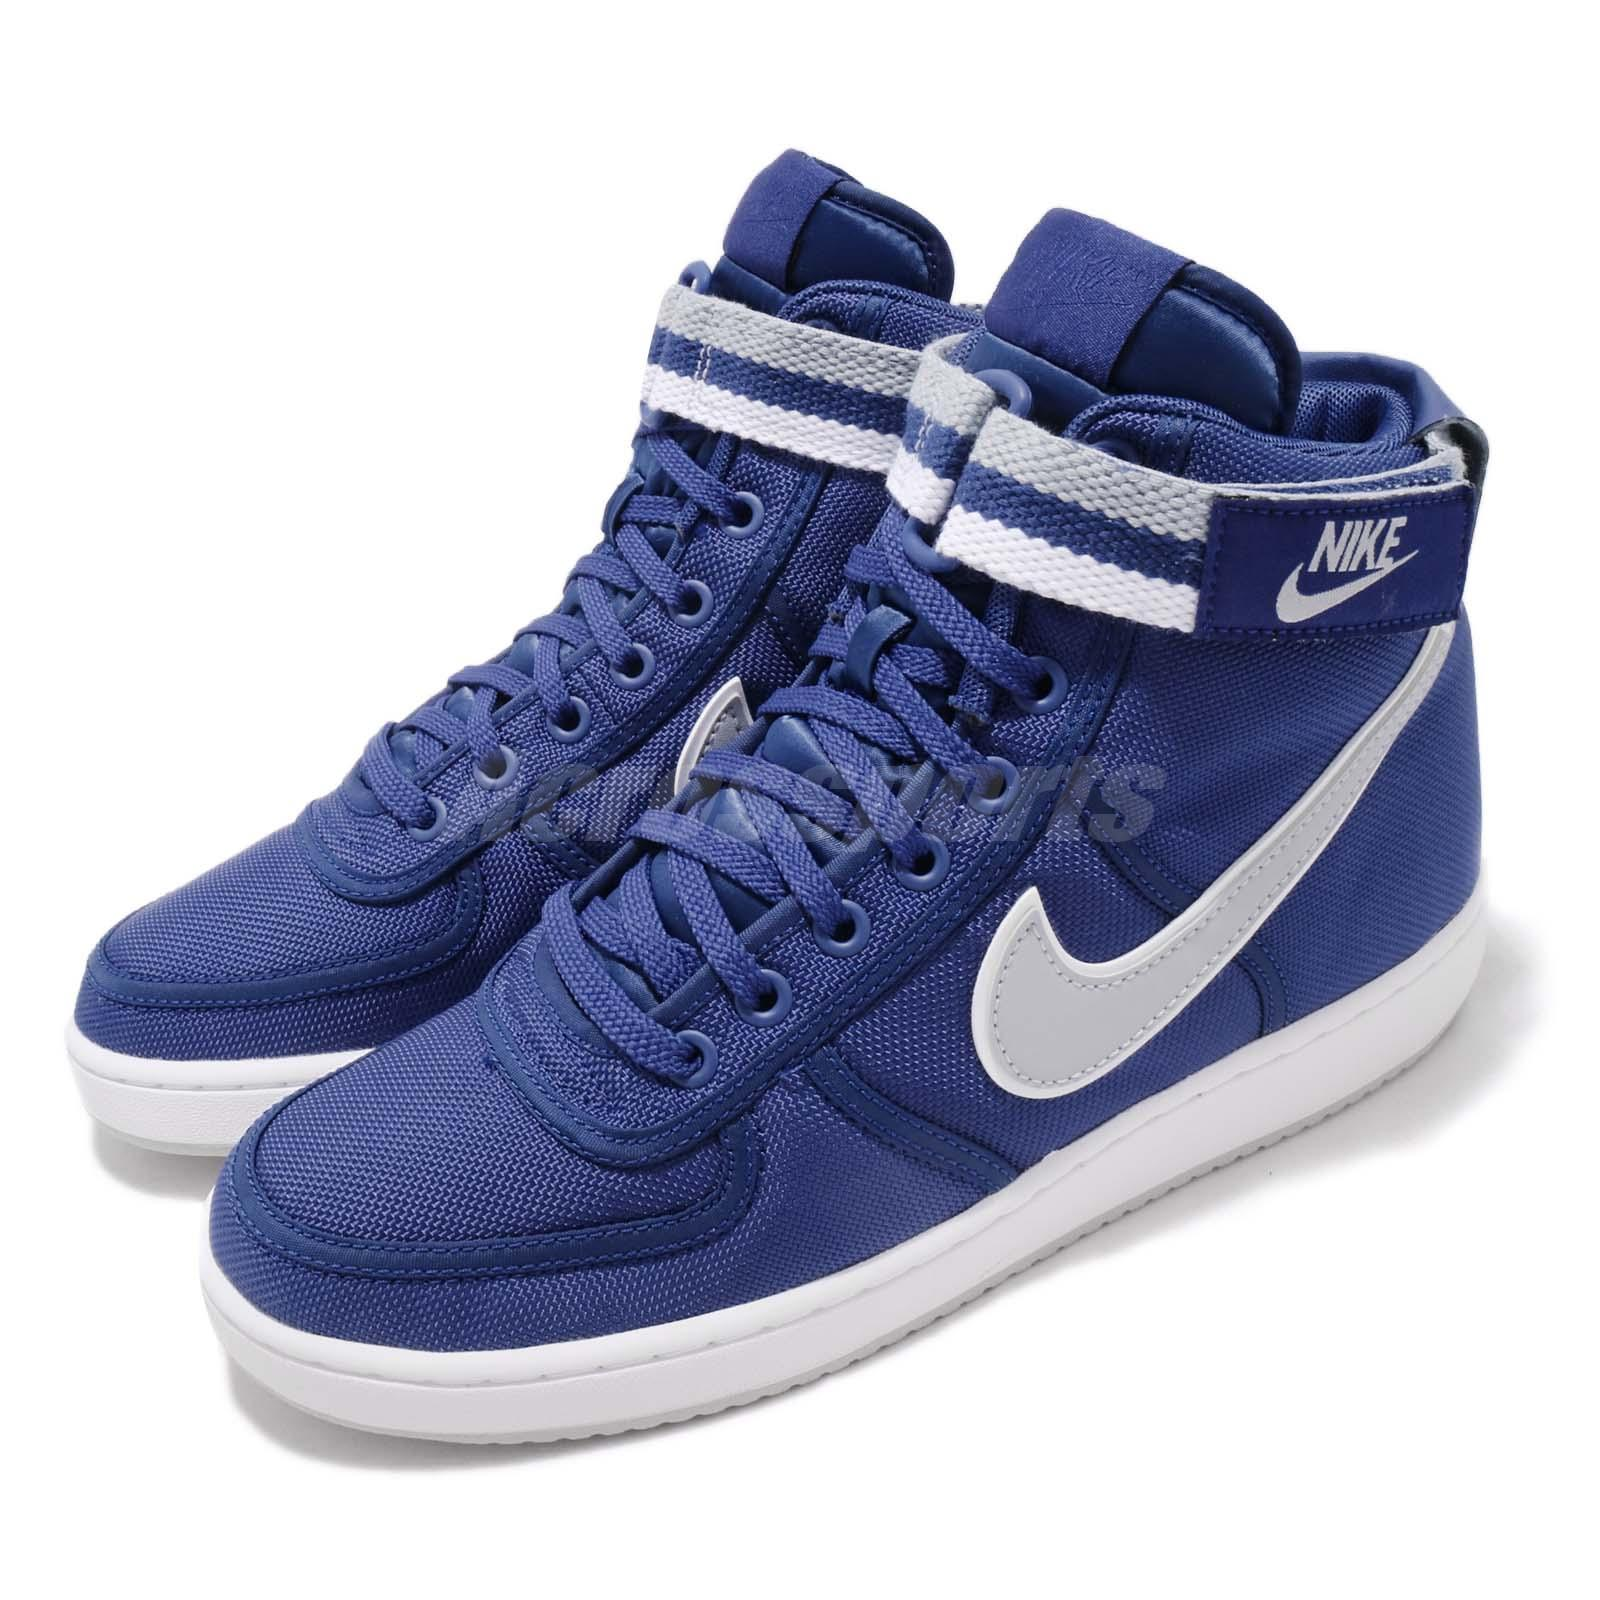 5043d6ae7b9 Details about Nike Vandal High Supreme Deep Royal Blue Grey Men Casual Shoe  Sneaker 318330-403